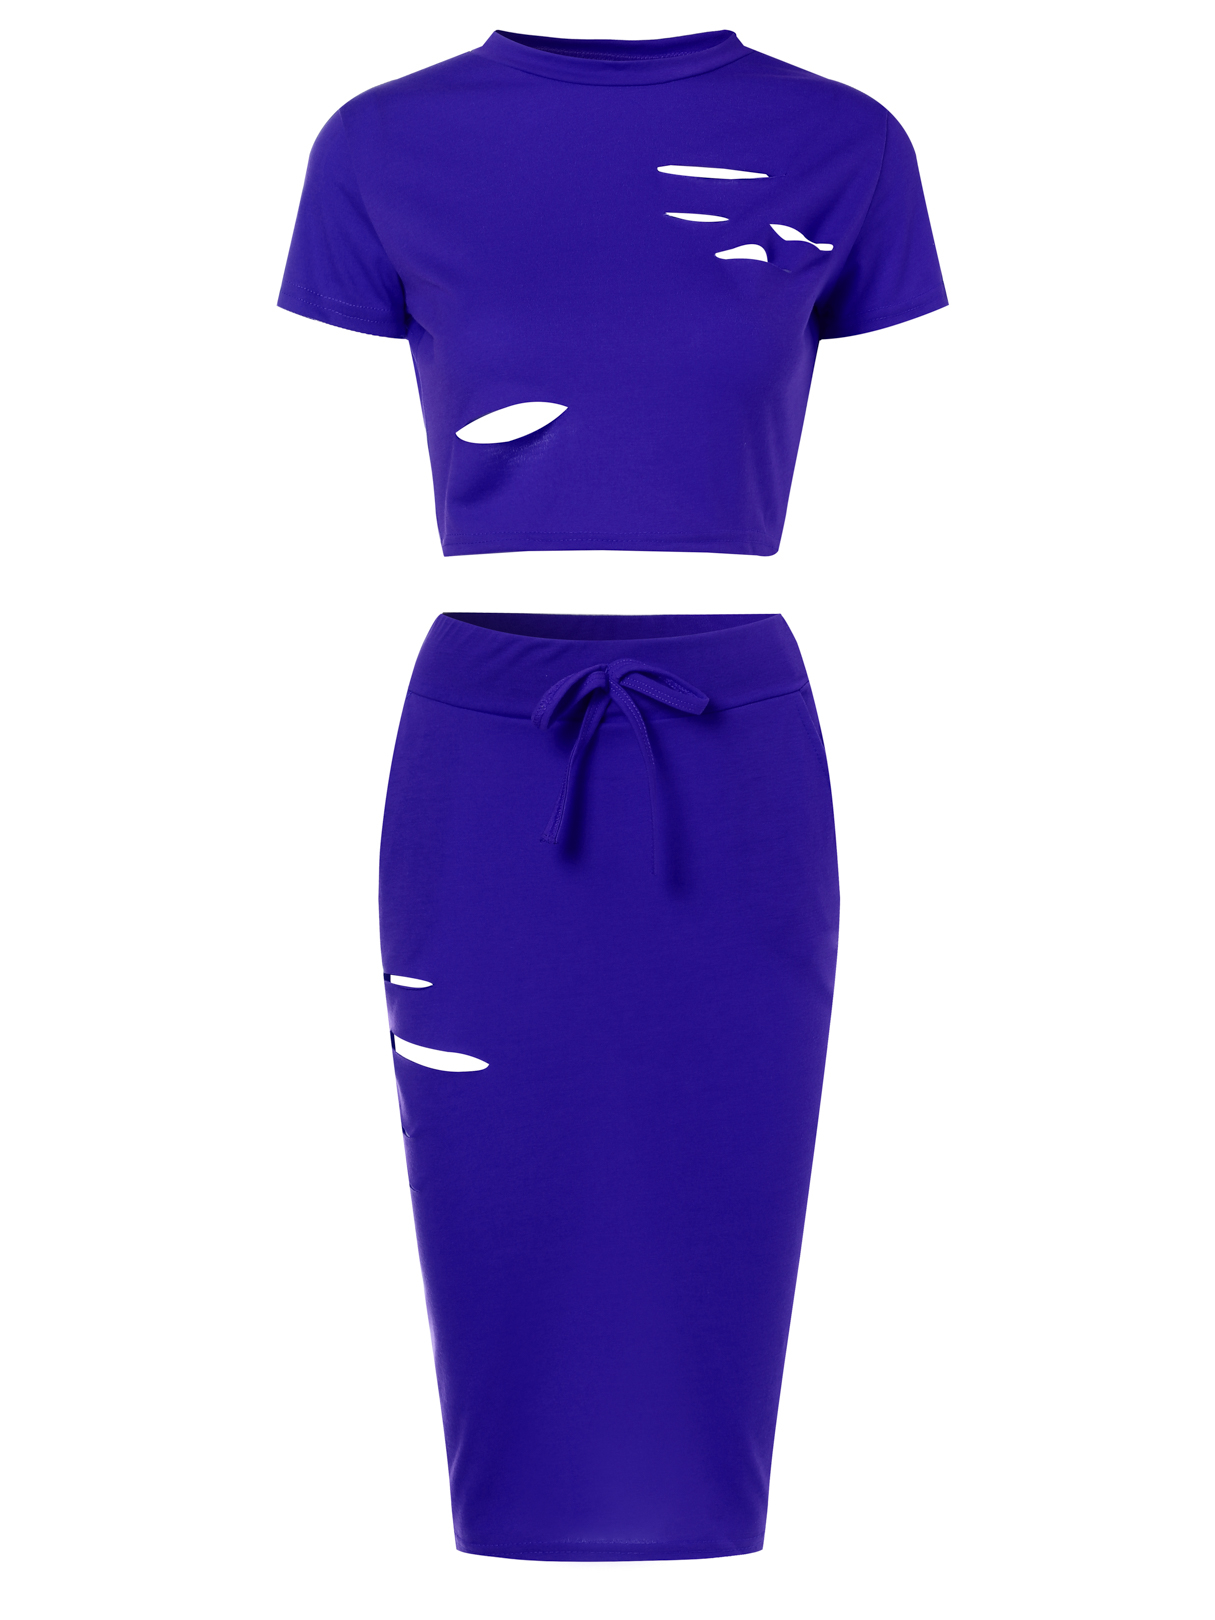 Royal Sexy Ripped Holes Crop Top and Skirt Two Piece Outfits